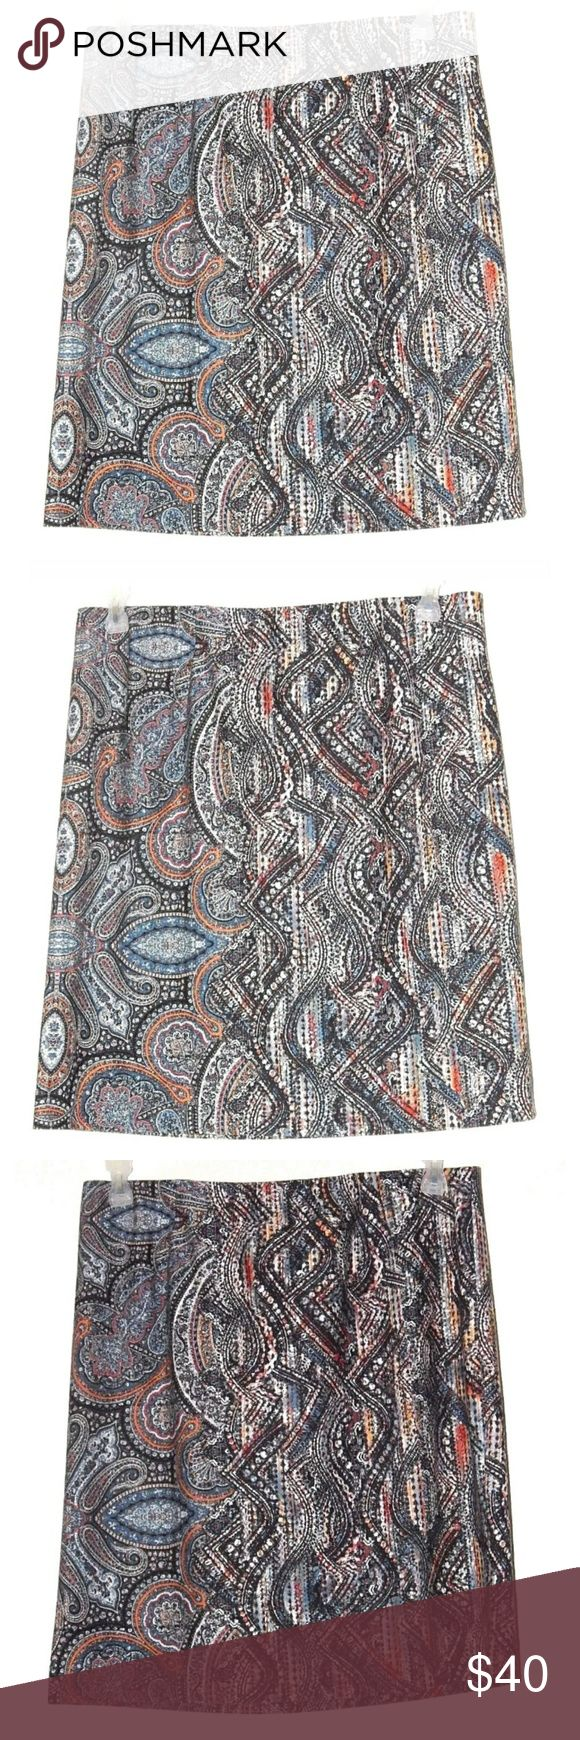 J JillMod Paisley PrintPonte Pencil Skirt J Jill  Mod Paisley  Jacobean Print  Ponte Pencil Stretch Skirt  Size M  Career/ Wear to Work   Excellent like new condition! No stains rips or flaws..   Measurements:   Waist:16in  Length:20.5in J. Jill Skirts Pencil